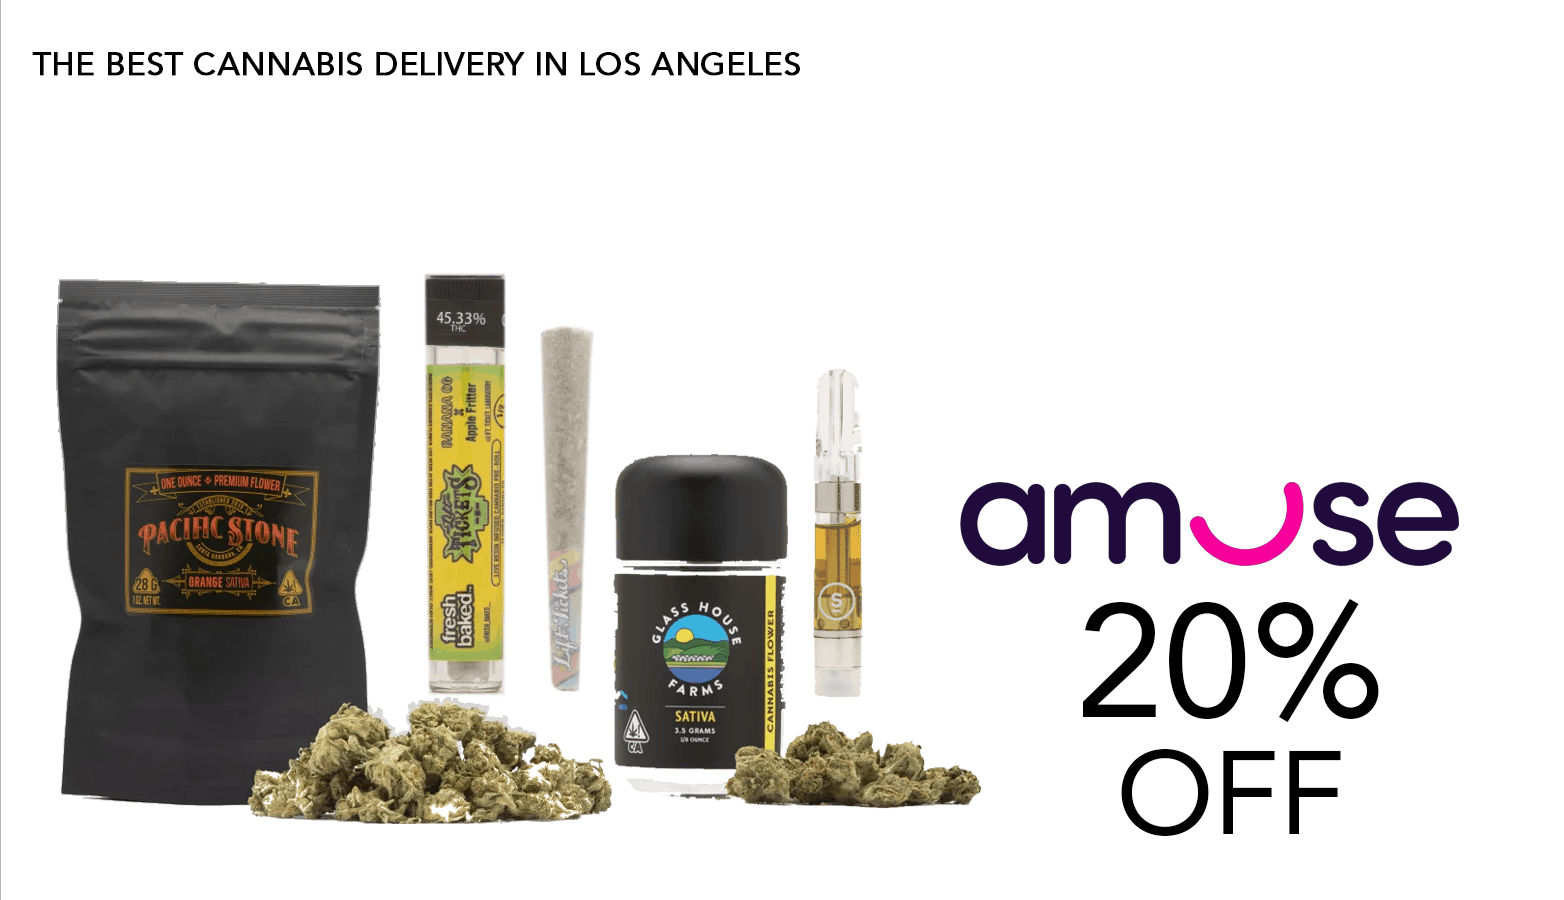 Amuse Cannabis Delivery Coupon Code Offer Website